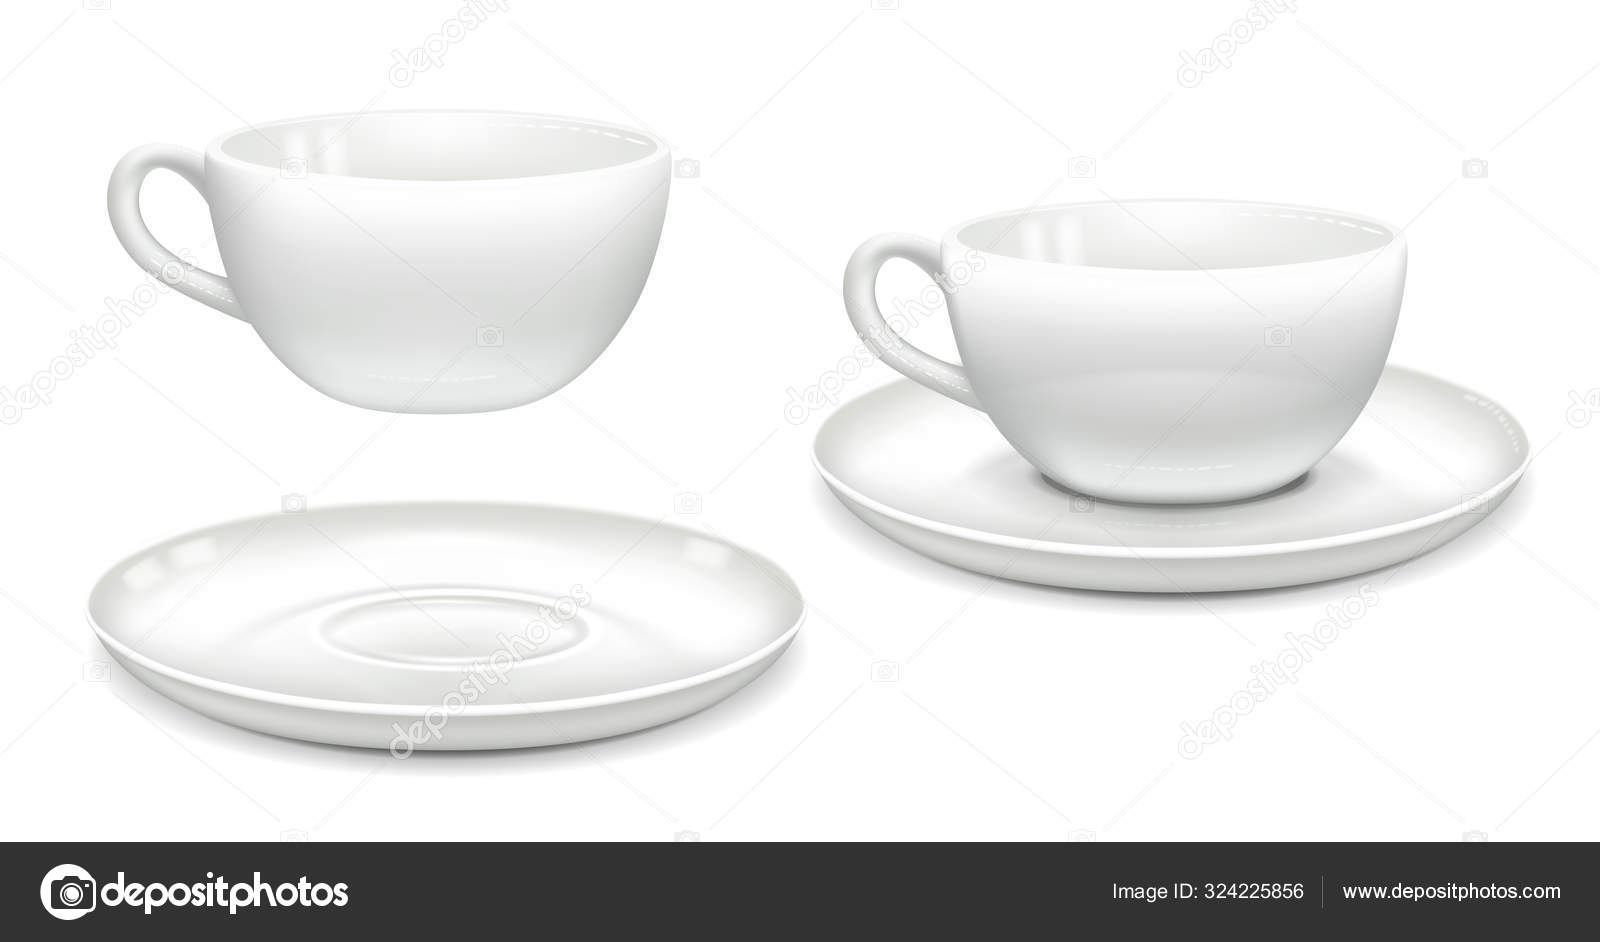 White Coffee Cup Saucer Together Separately Side View Mockup Advertising Stock Vector C Danilina Olga Gmail Com 324225856